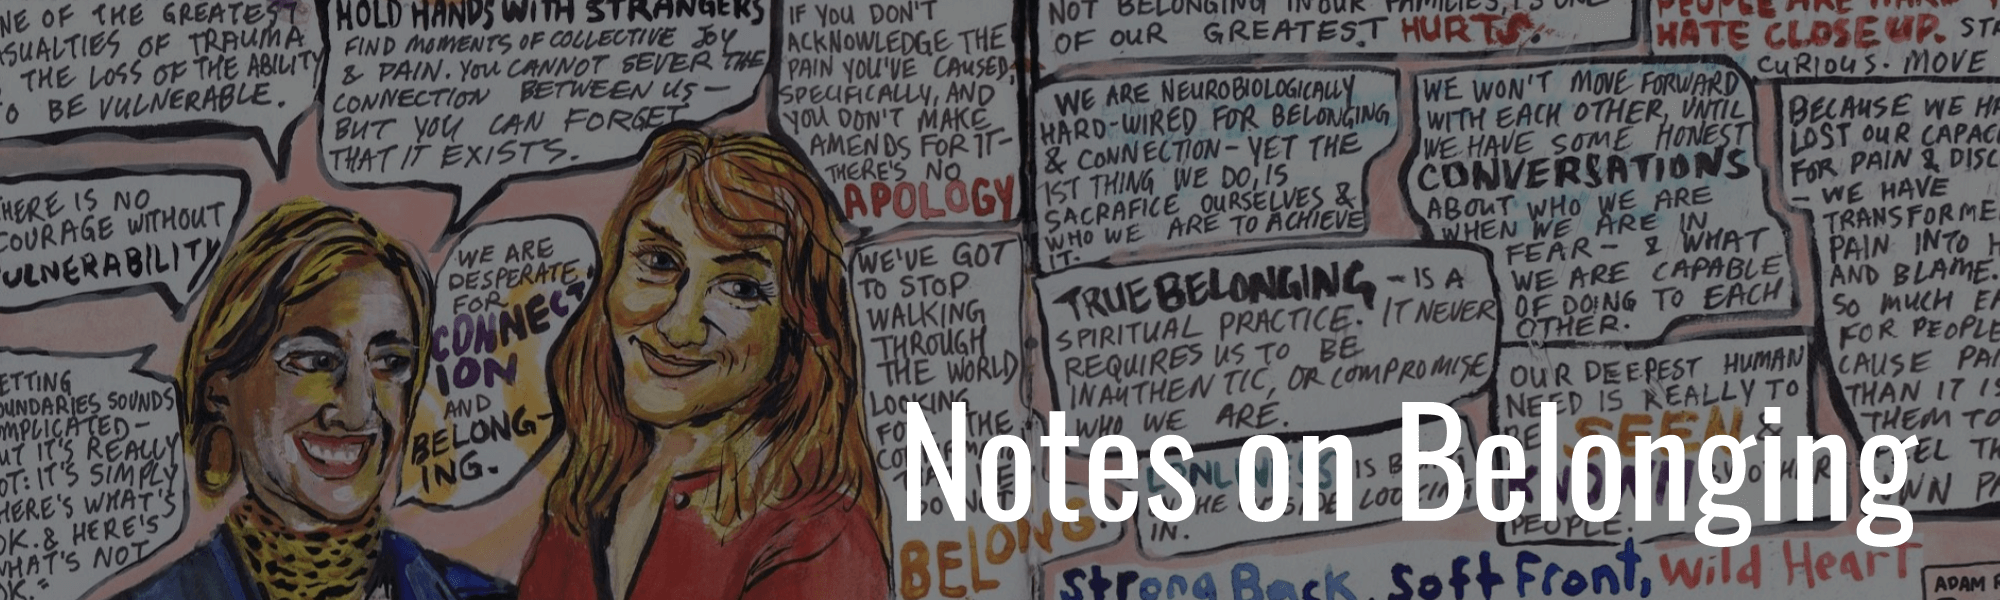 notes-on-belonging-illuminated-notes-content-offer-late-nite-art